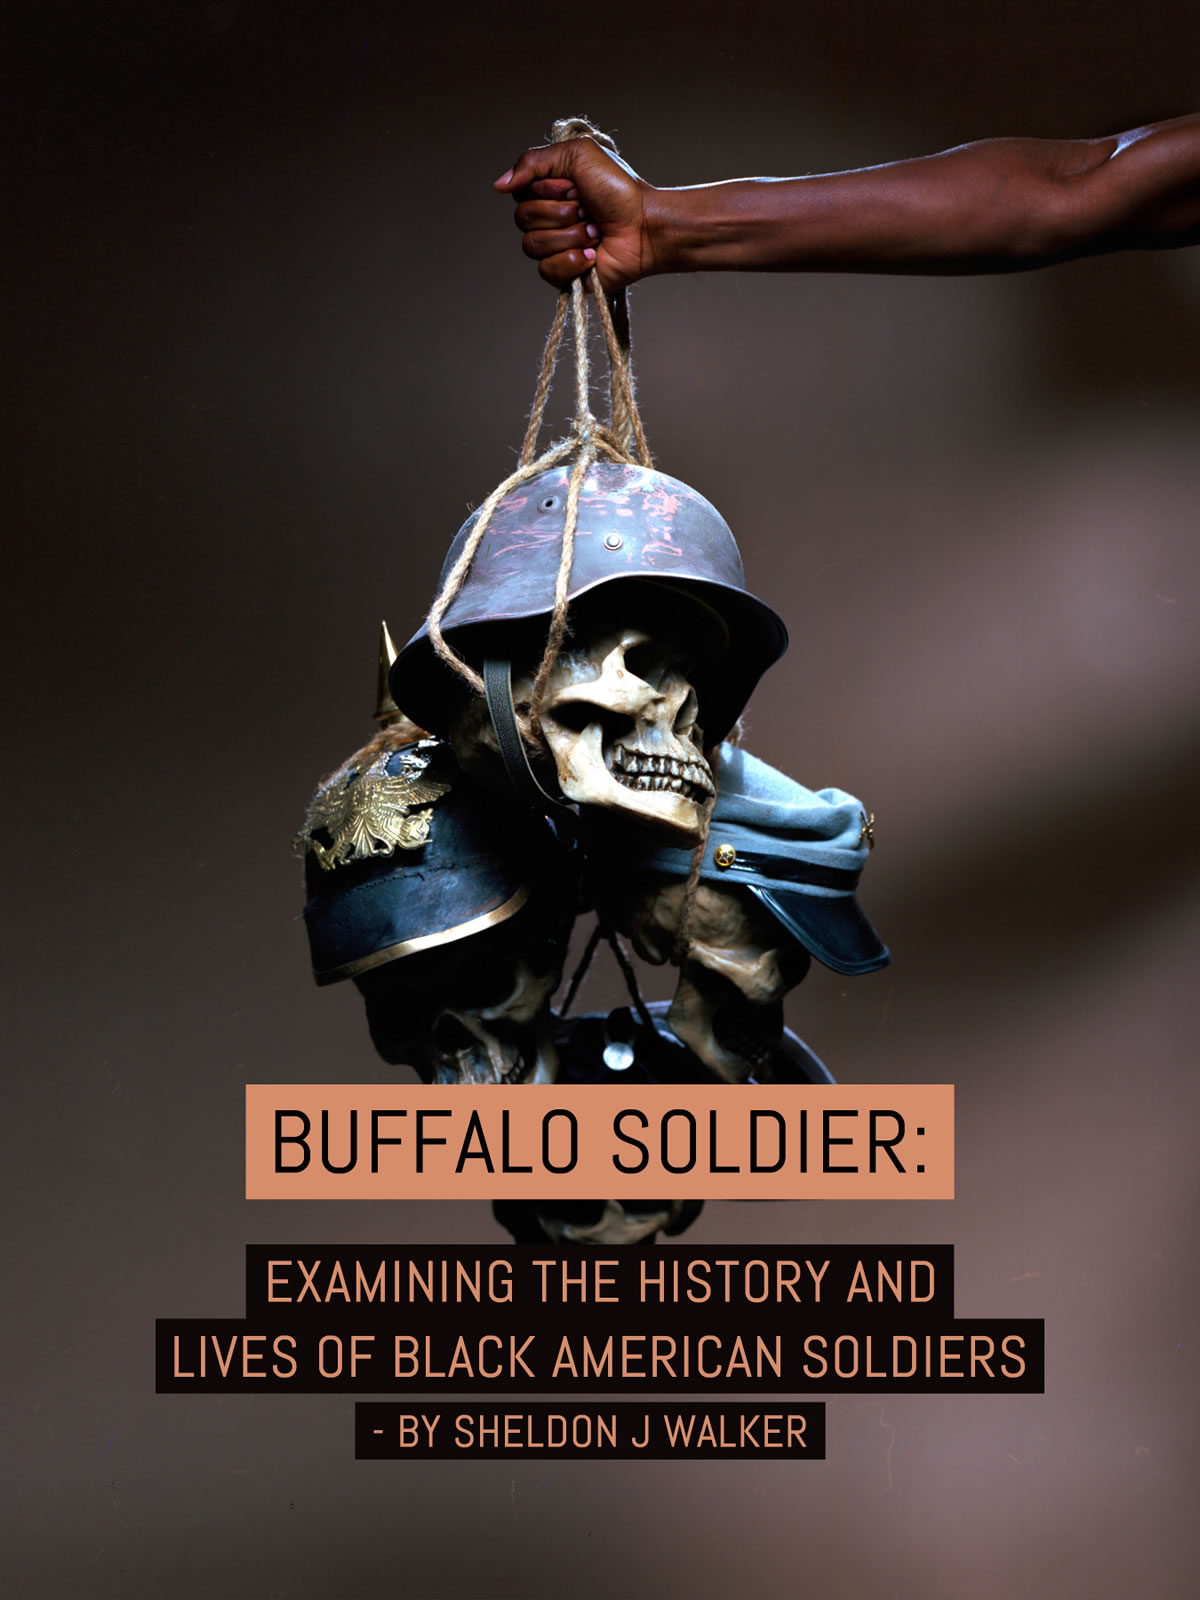 Buffalo Soldier: Examining the history and lives of black American soldiers – by Sheldon J Walker